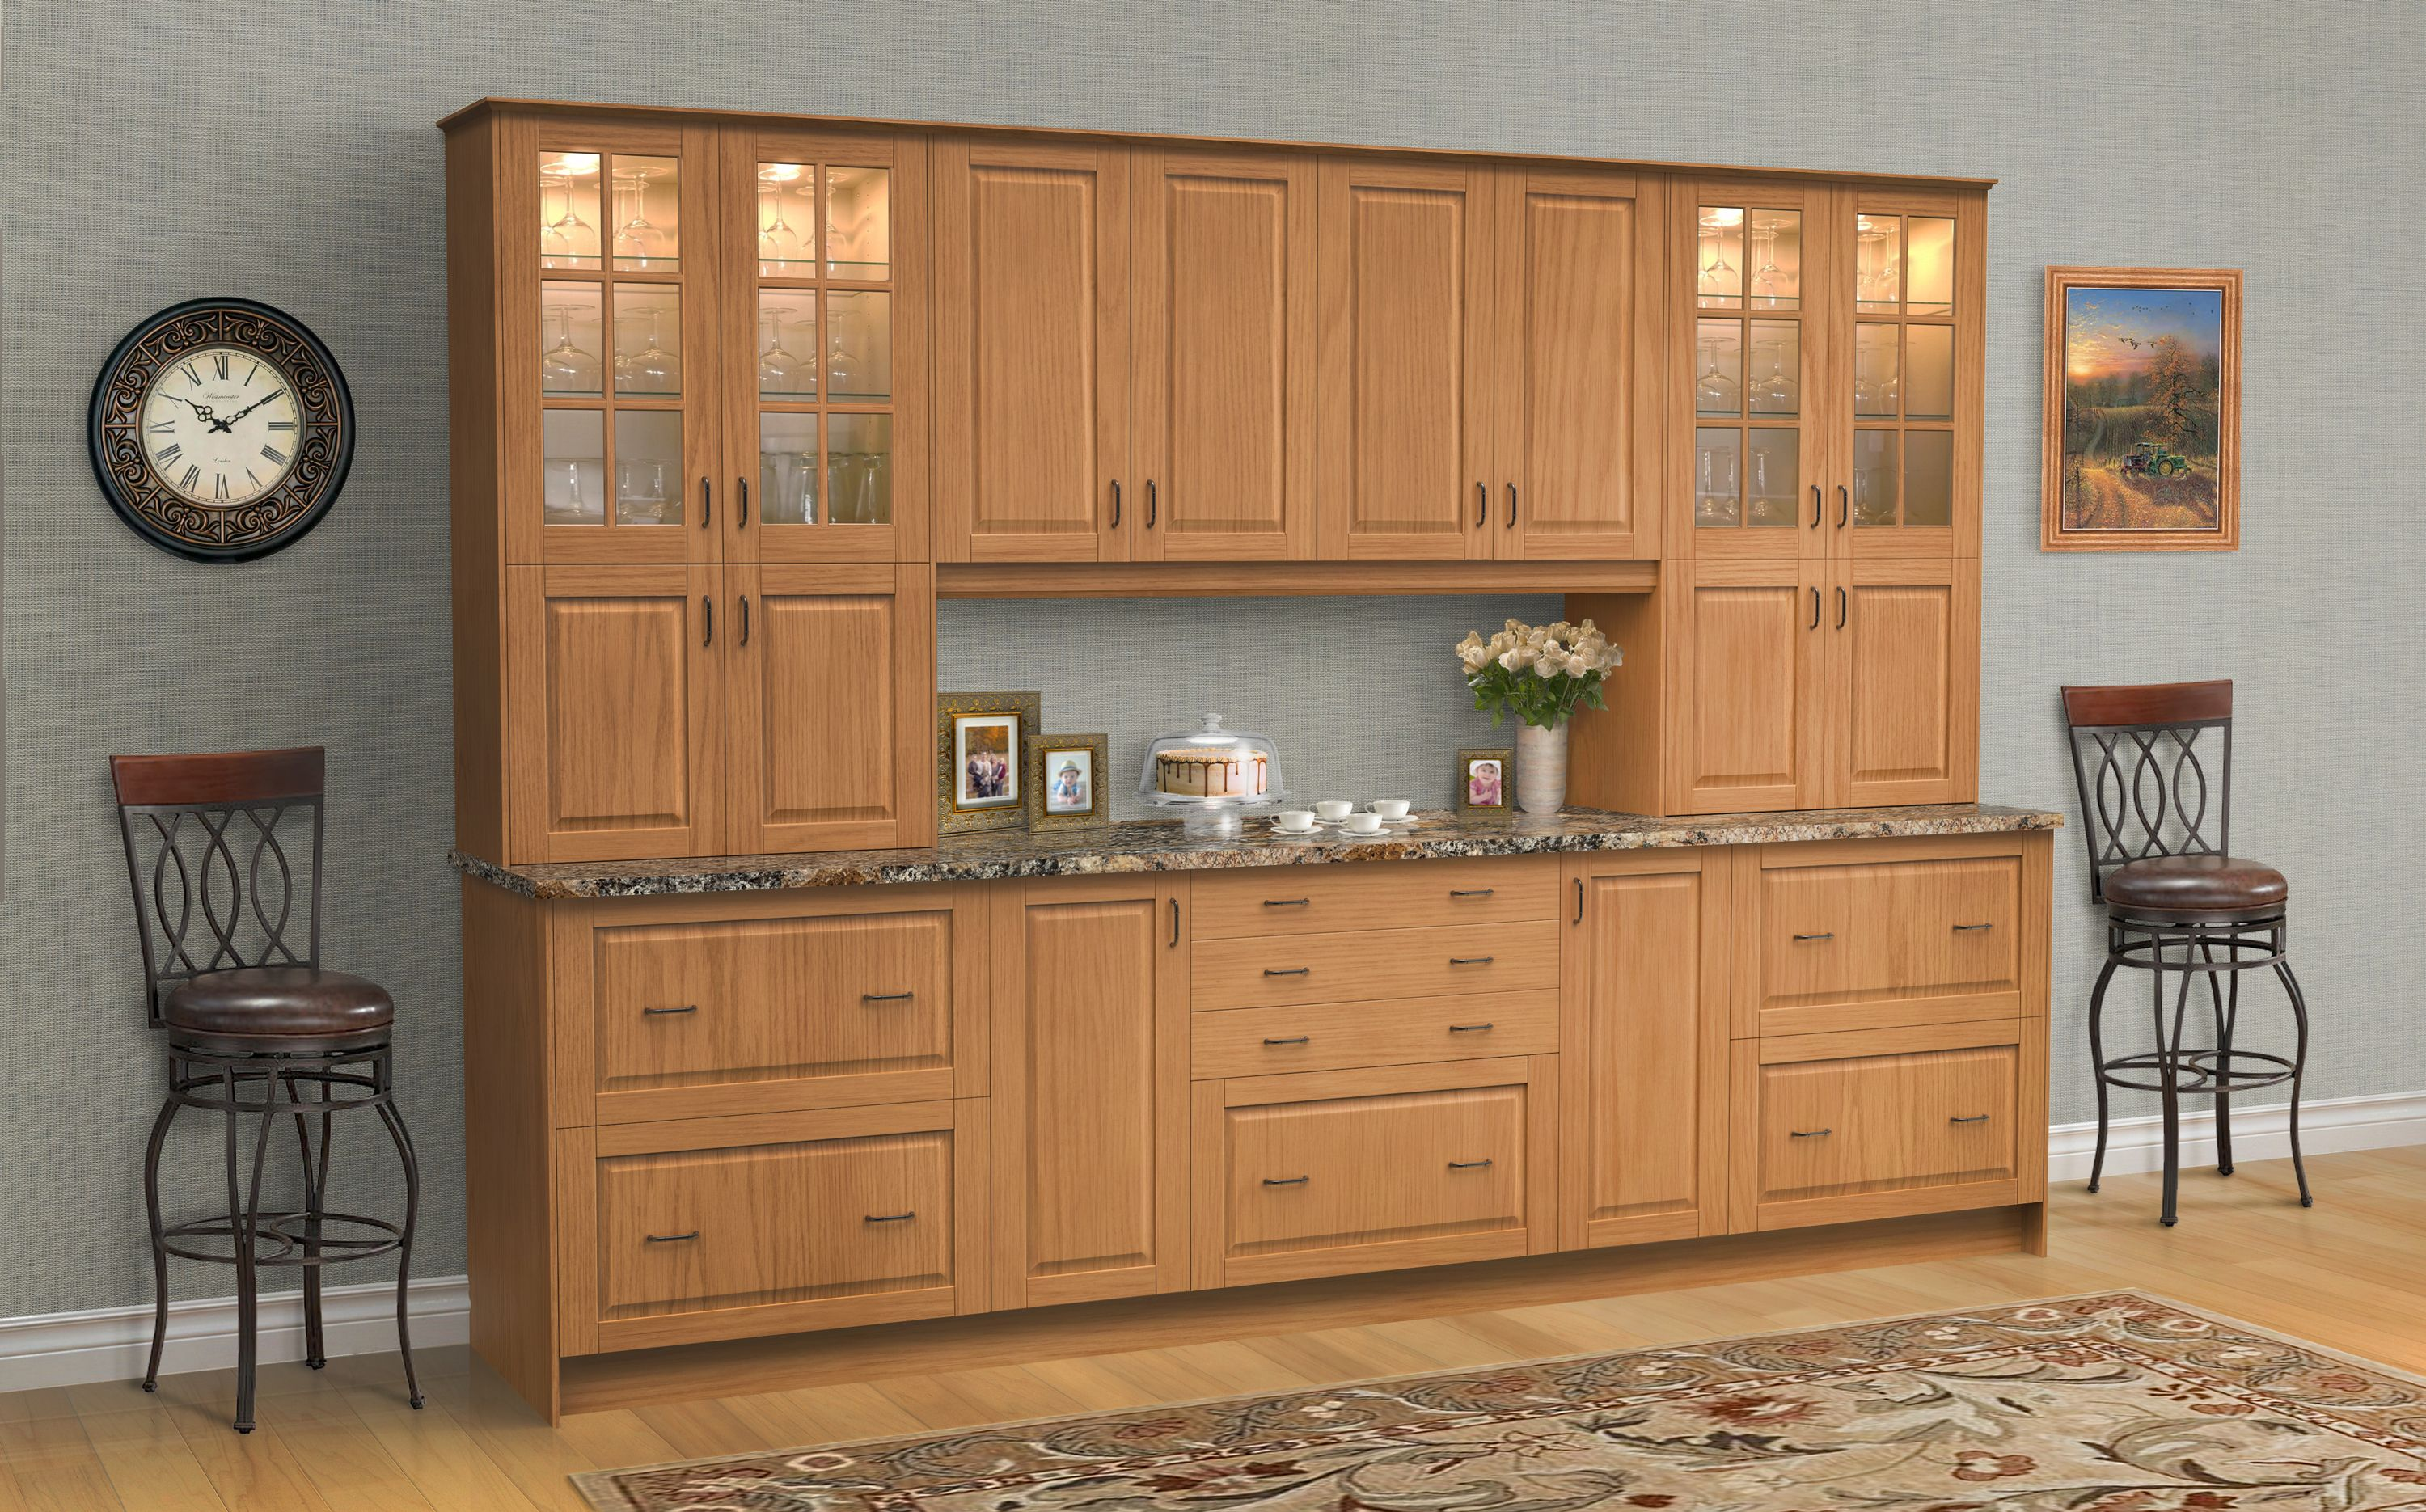 Pin On Dream Kitchens Klearvue Cabinetry